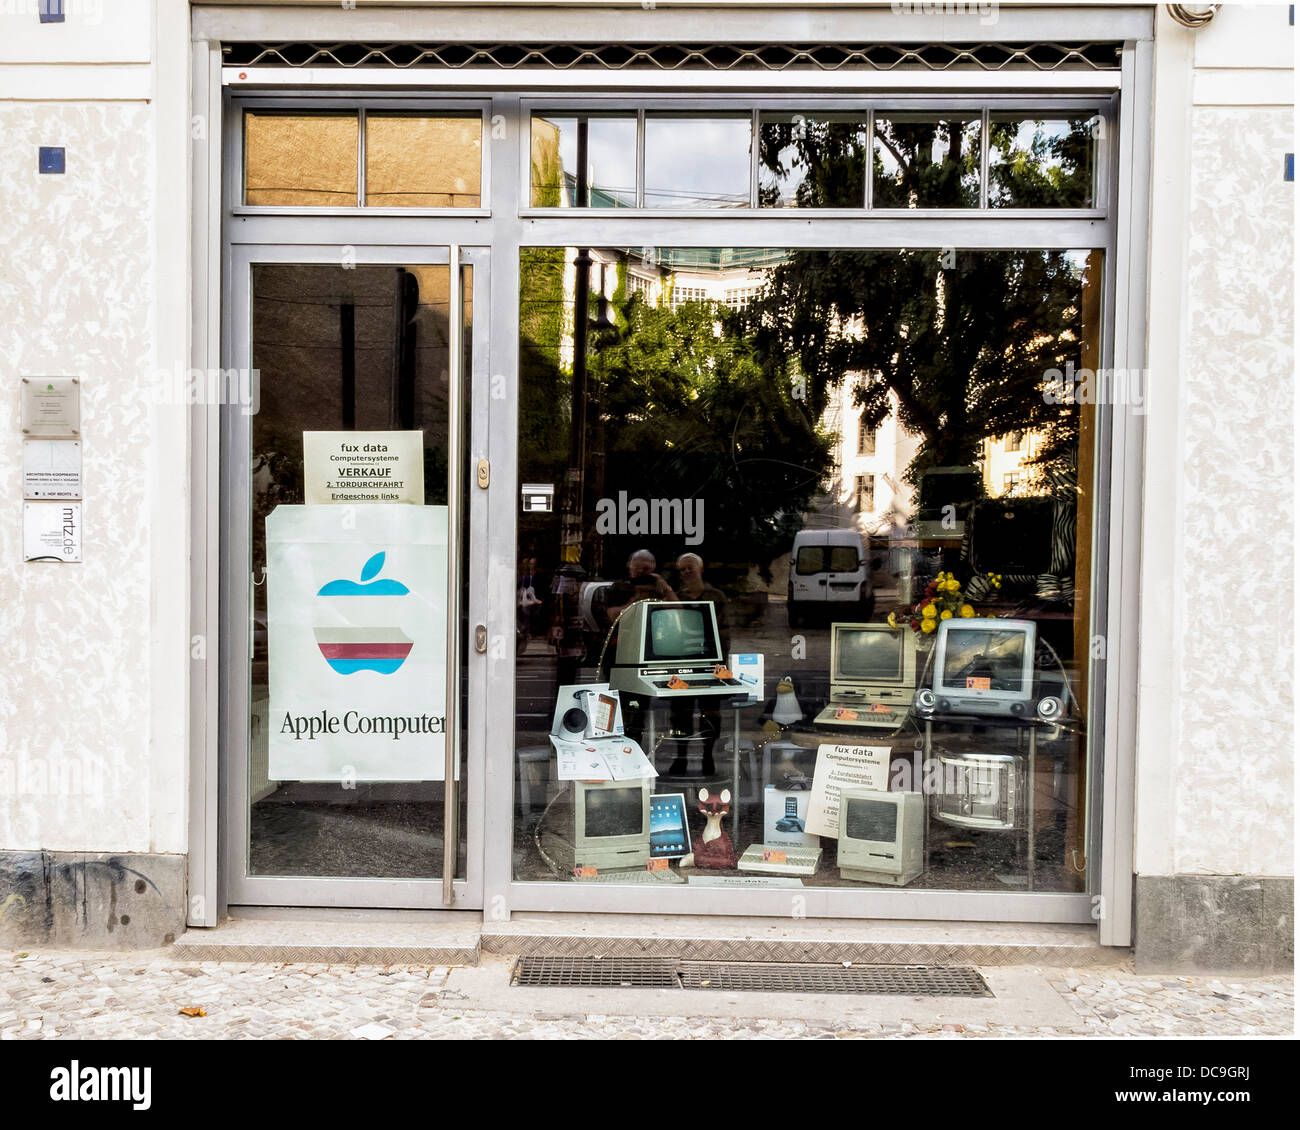 Fux Data, a shop selling and servicing old Apple and Mac computers, Berlin - Stock Image